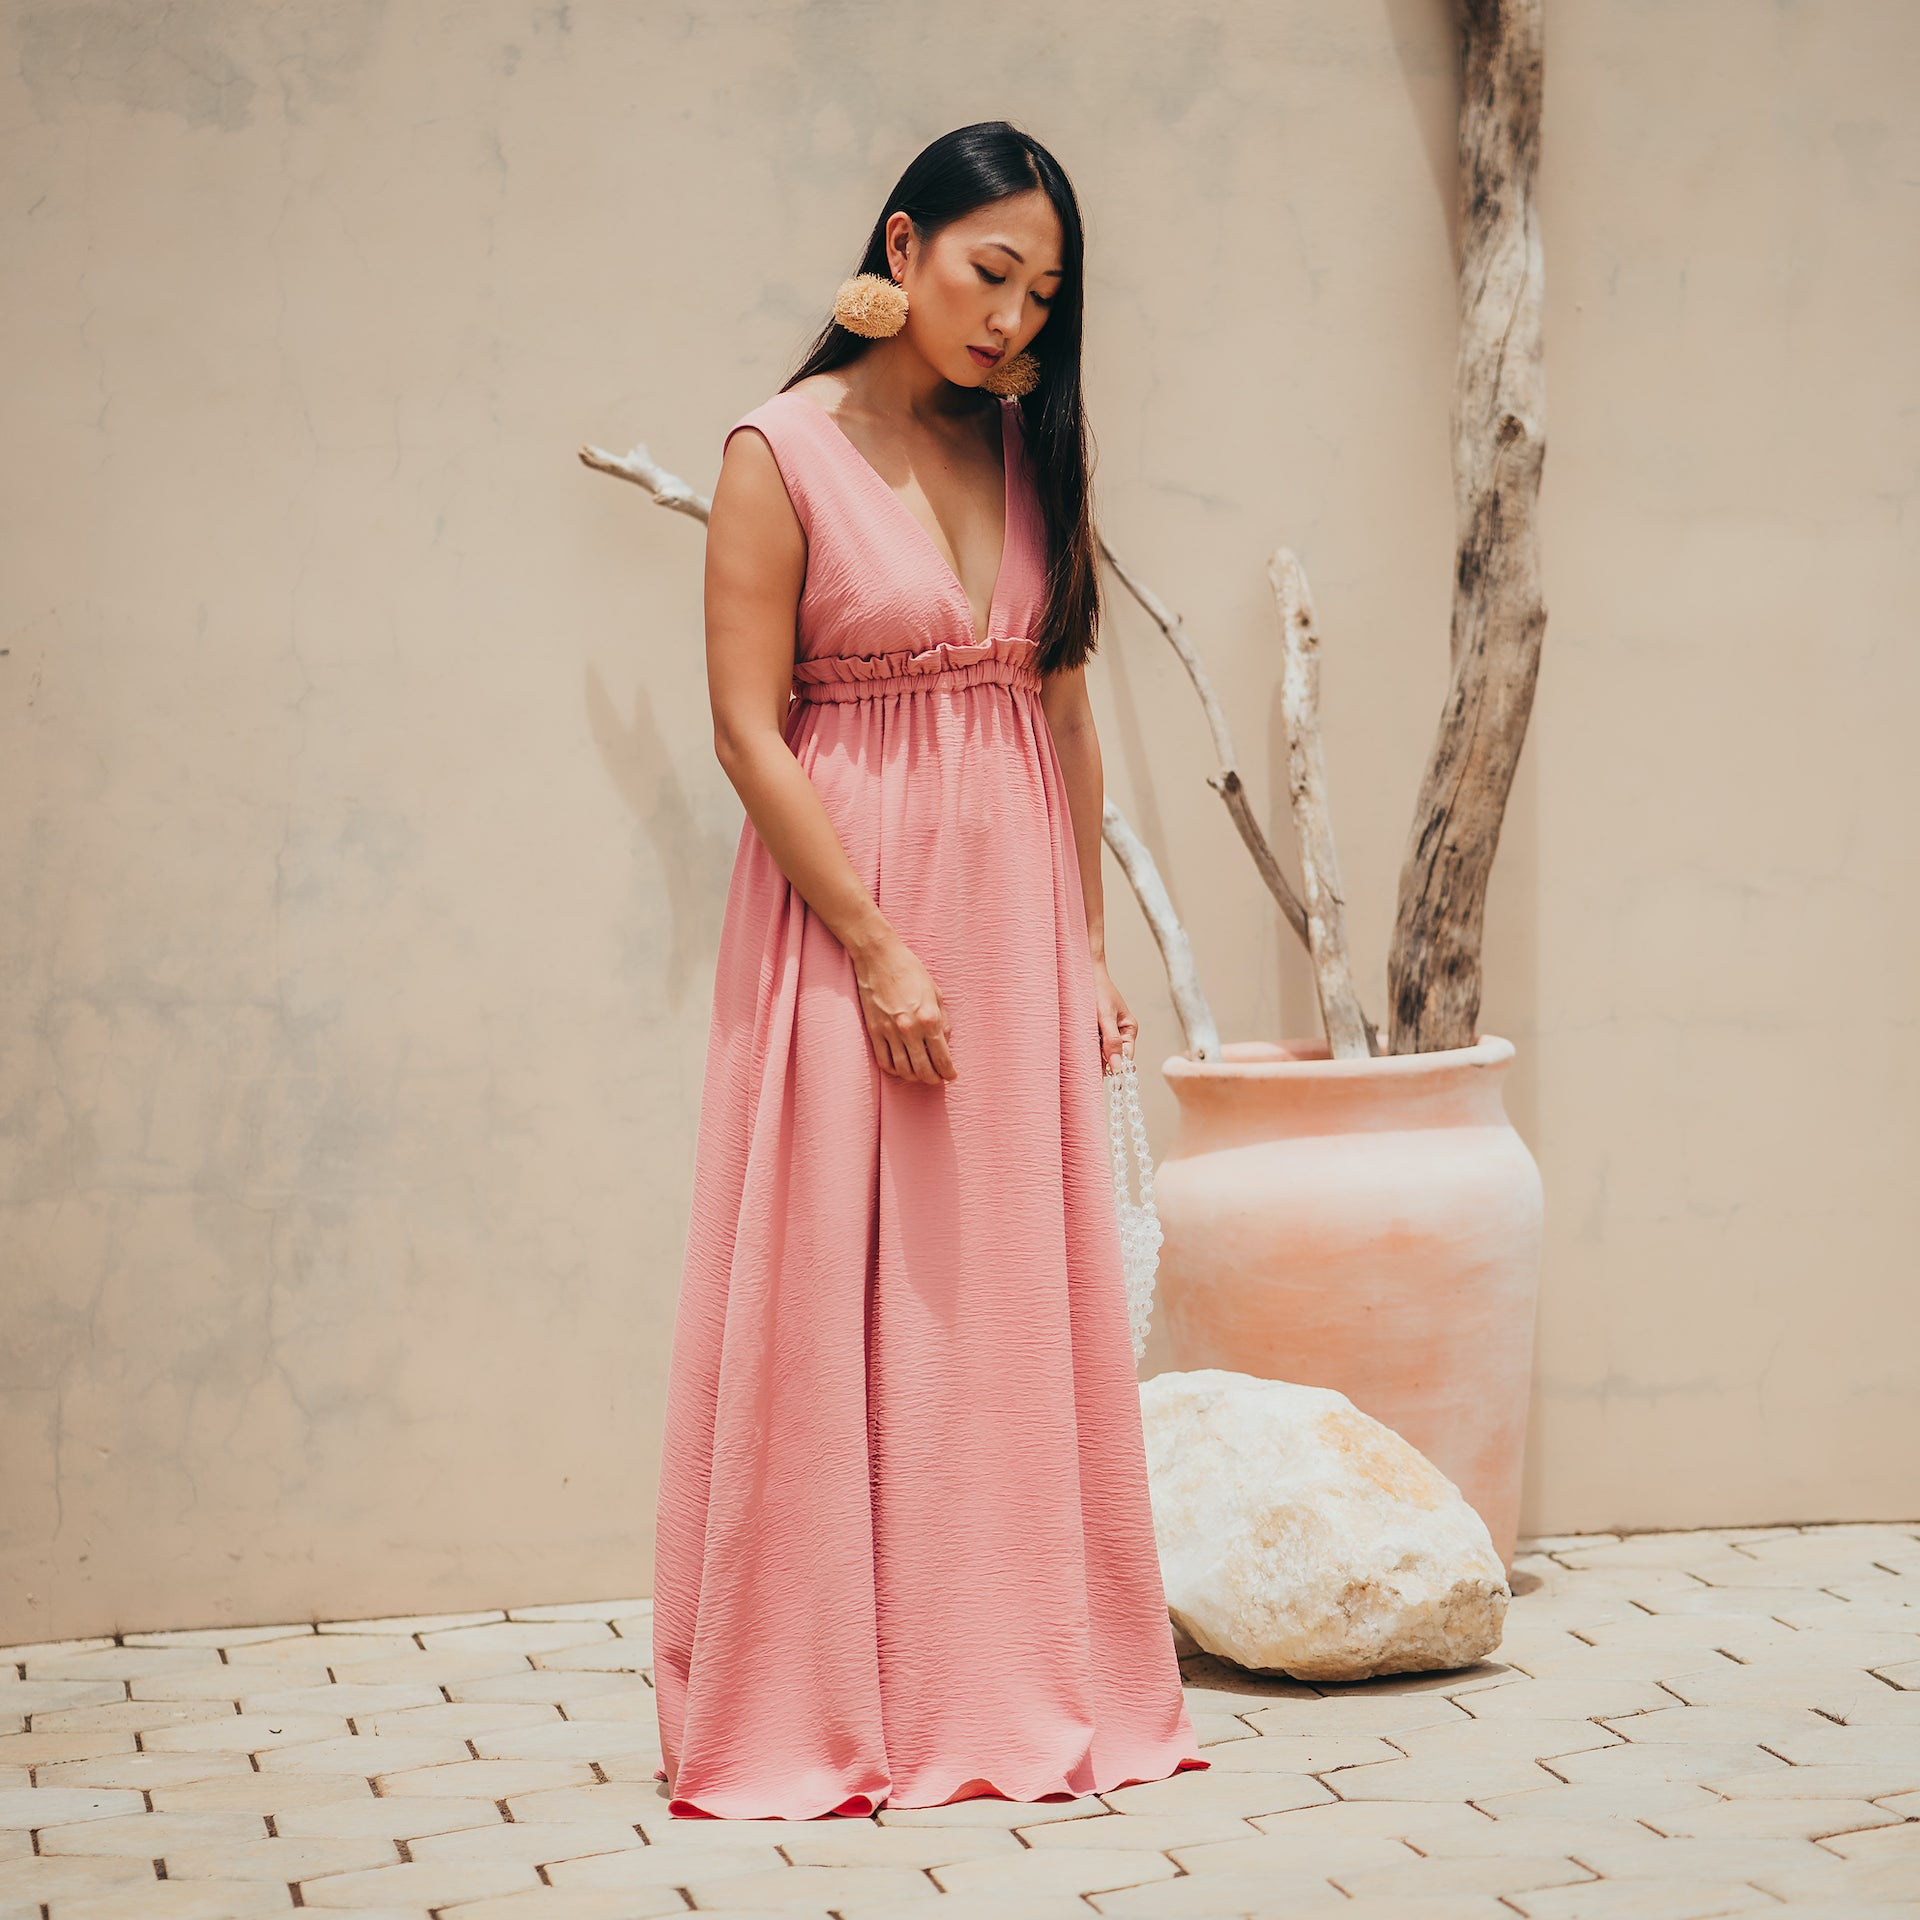 Lucine deep plunge, open back maxi dress in pink (PRE-ORDER)